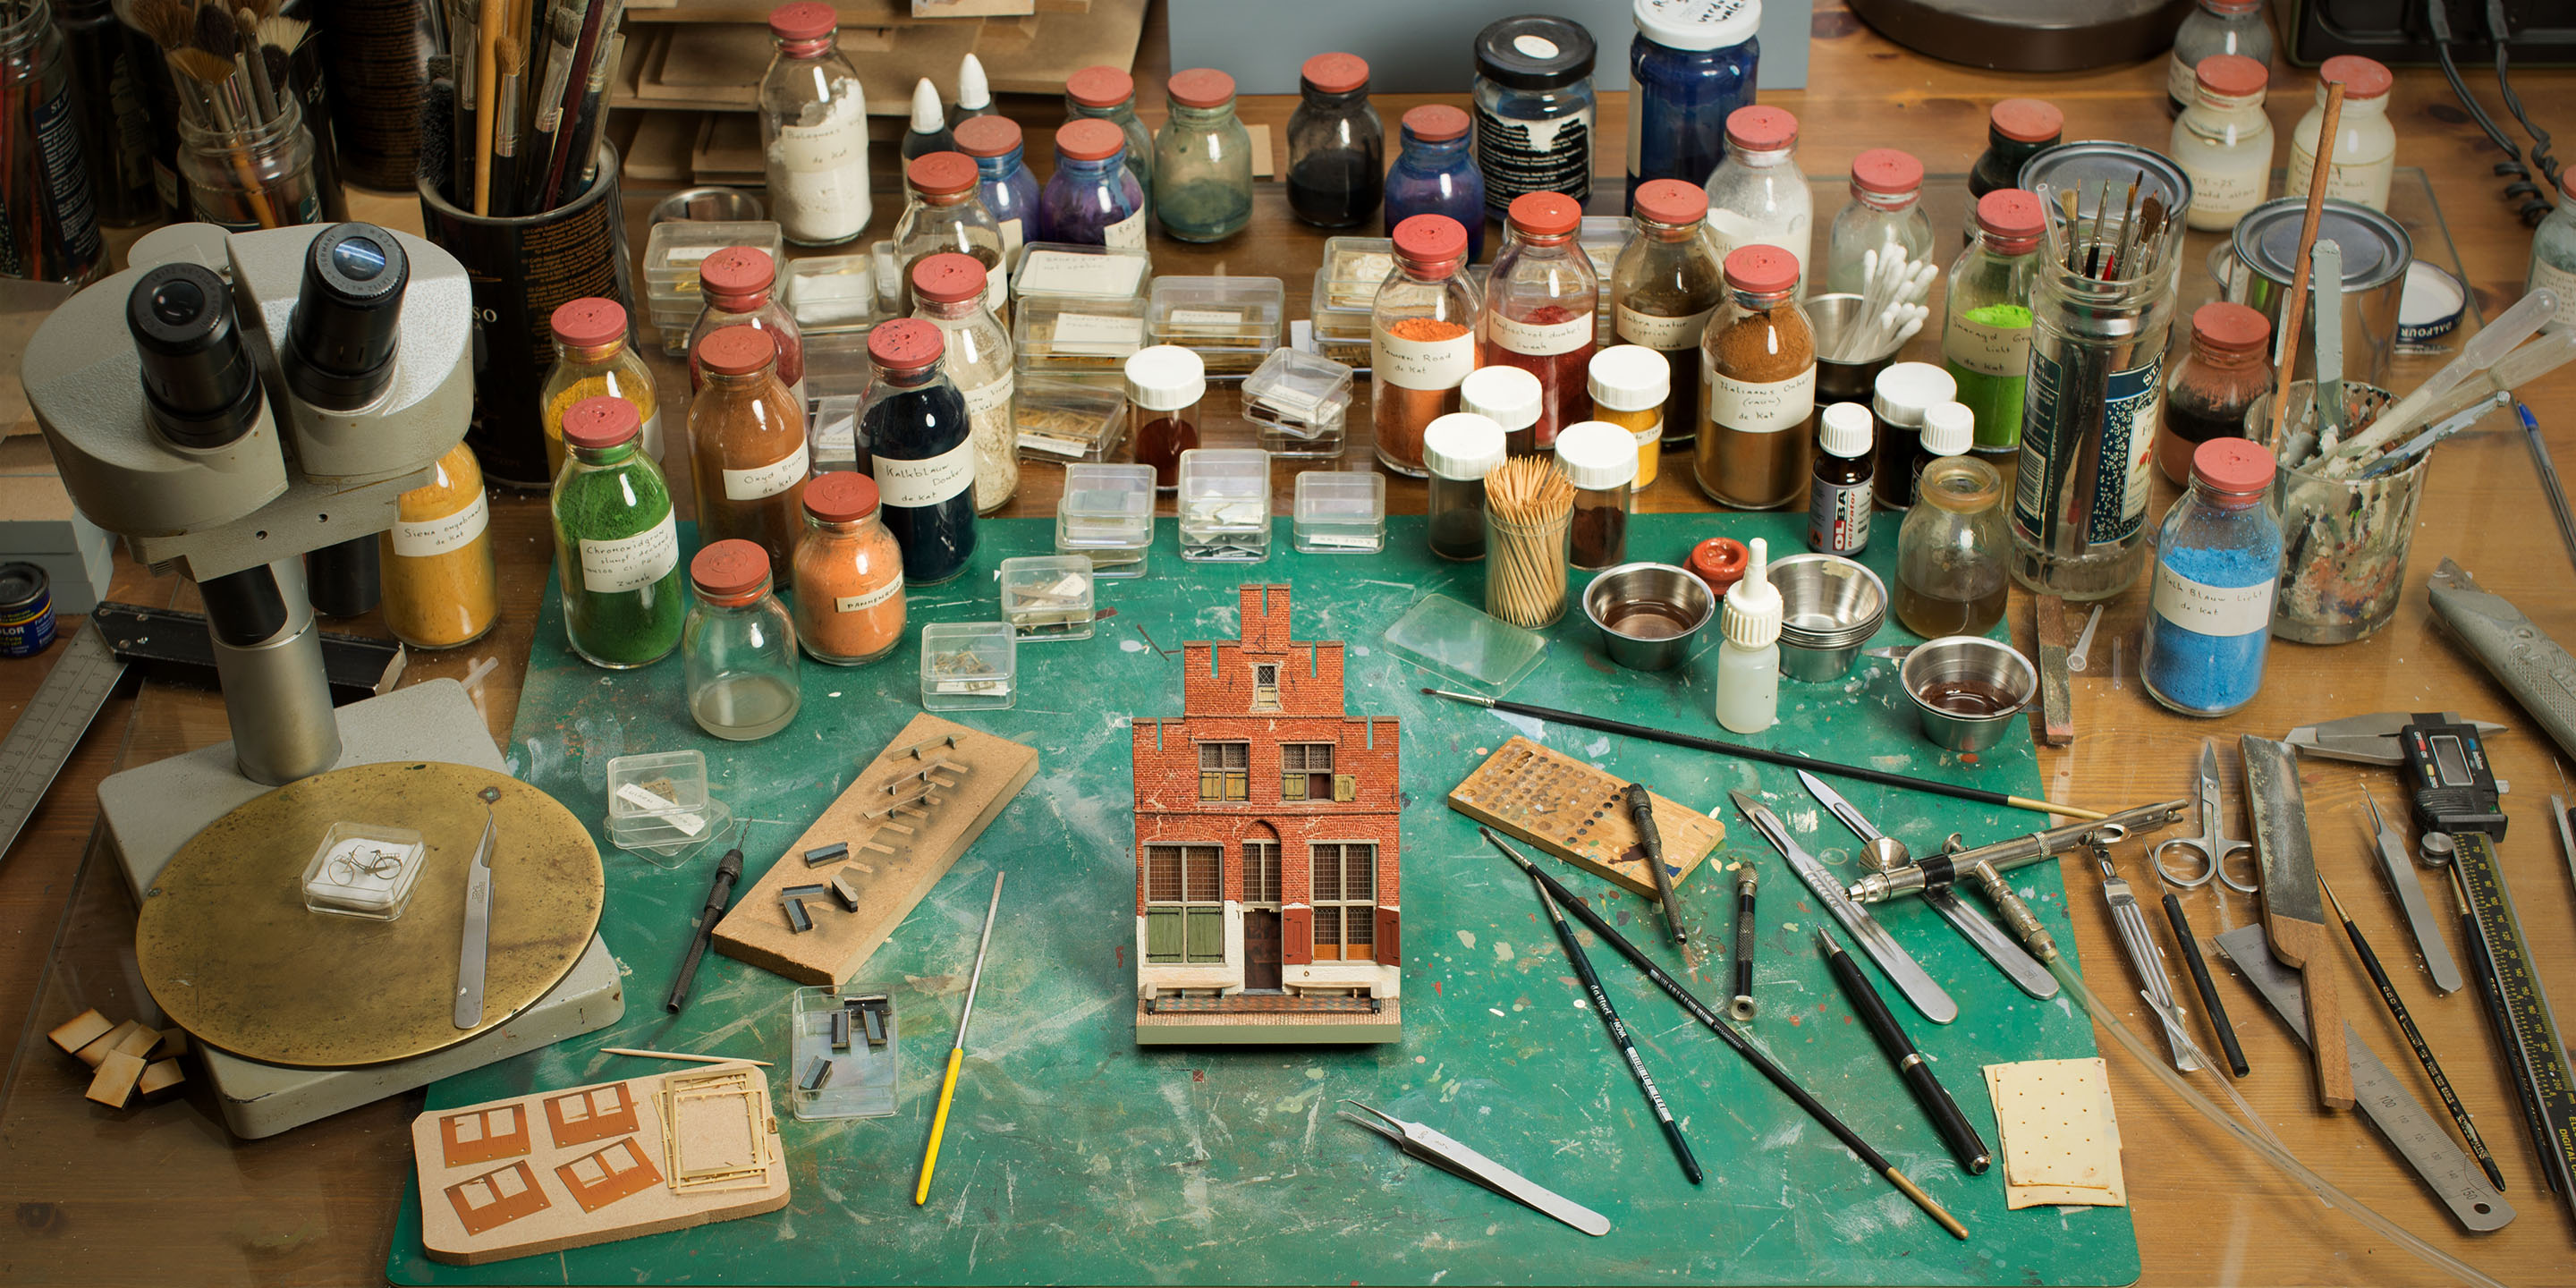 handmade, true-to-life scale miniature houses